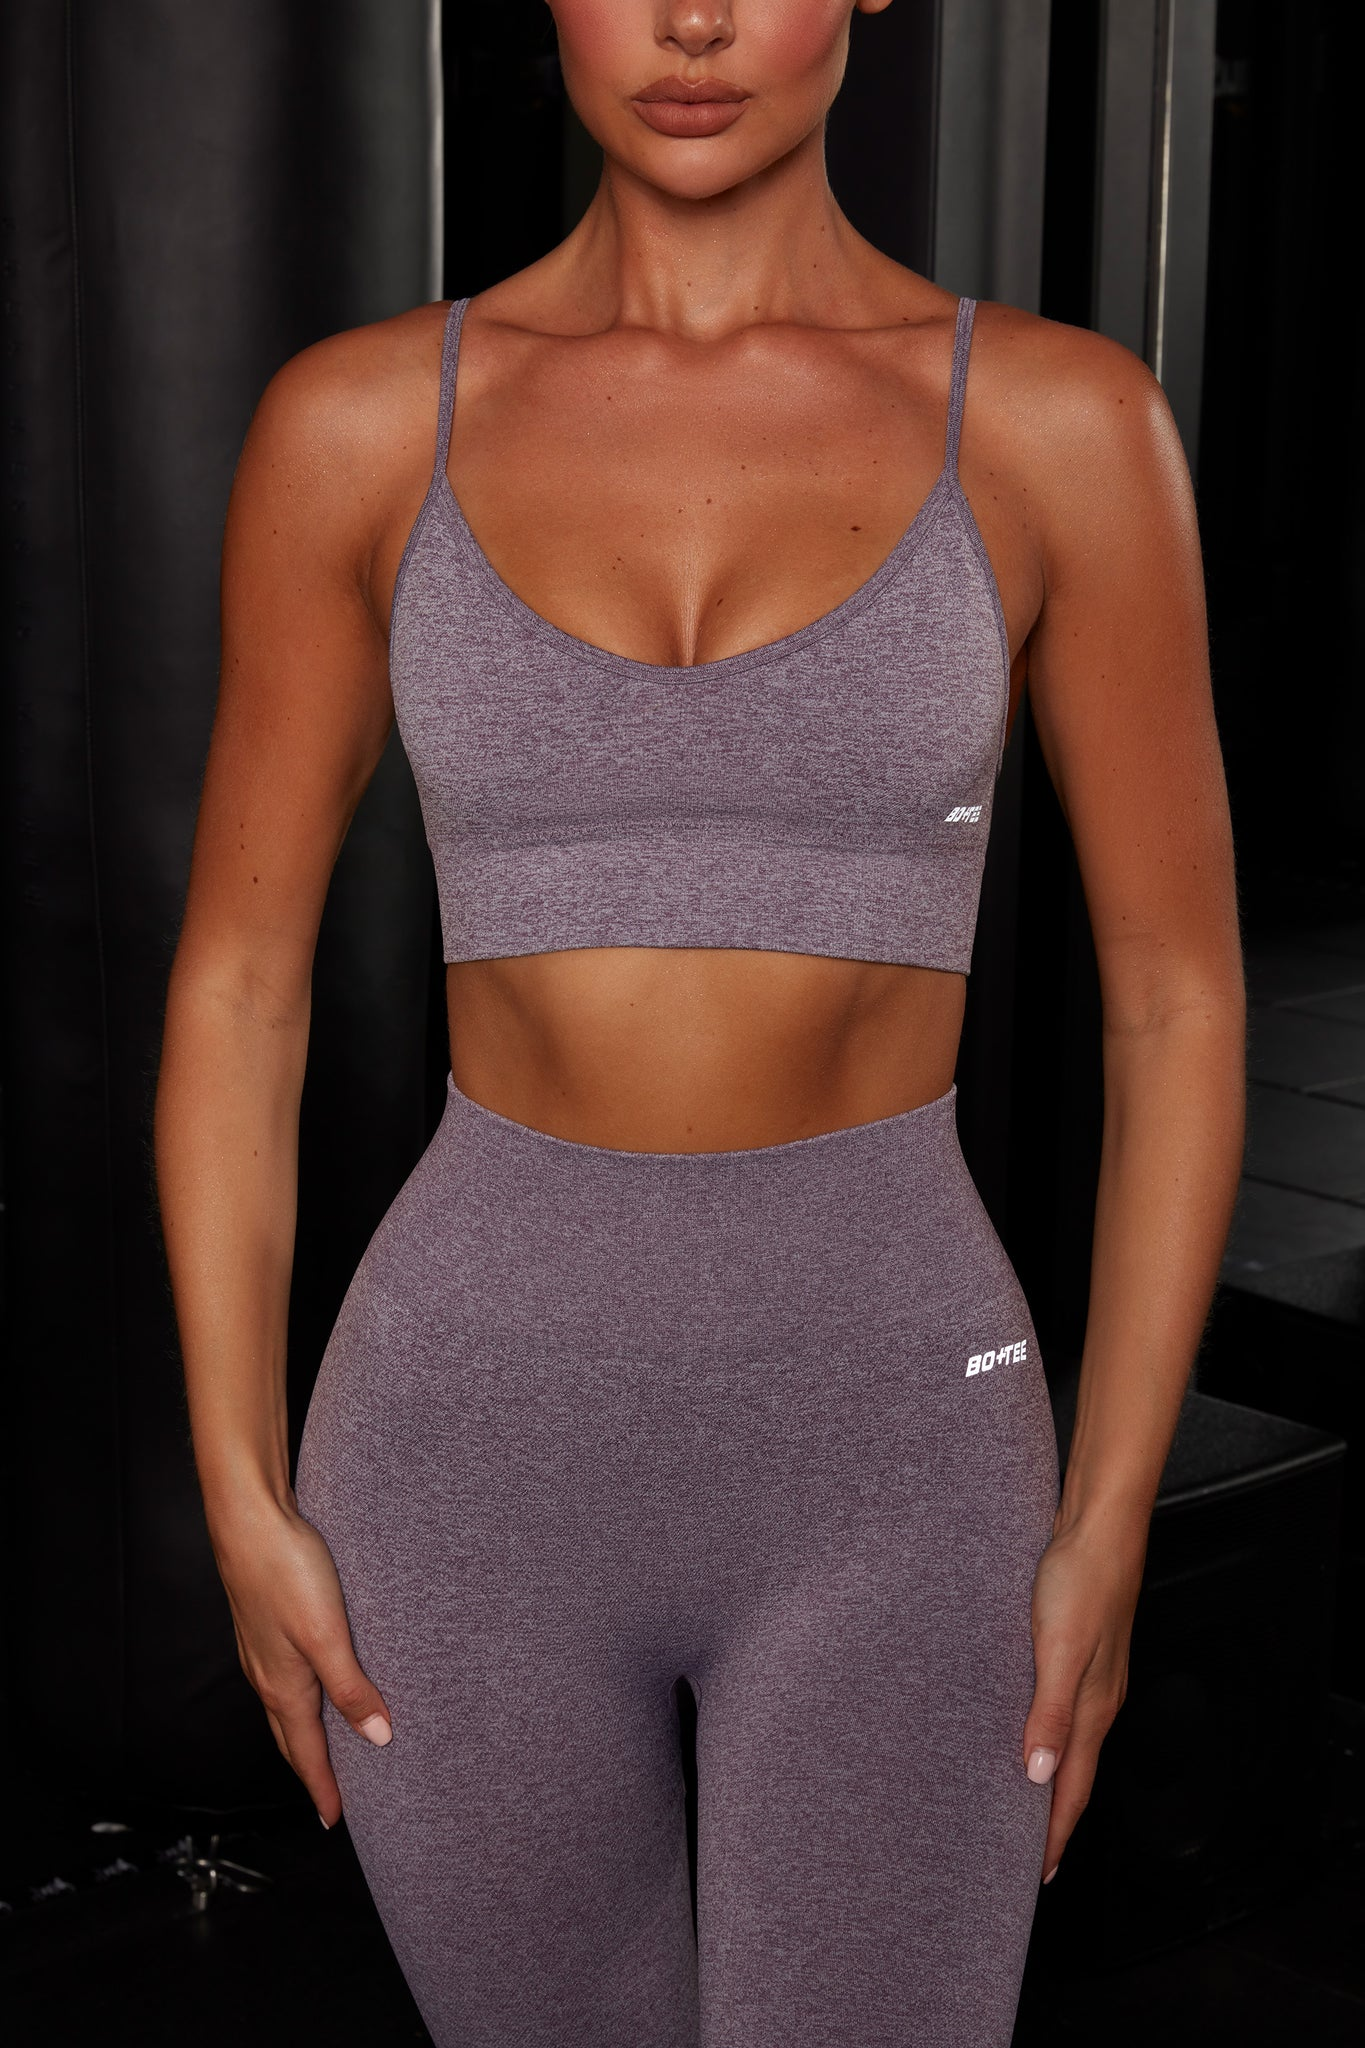 Plain purple melange V neck sports bra with ribbed underband, reflective branding and thin adjustable straps. Image 1 of 6.